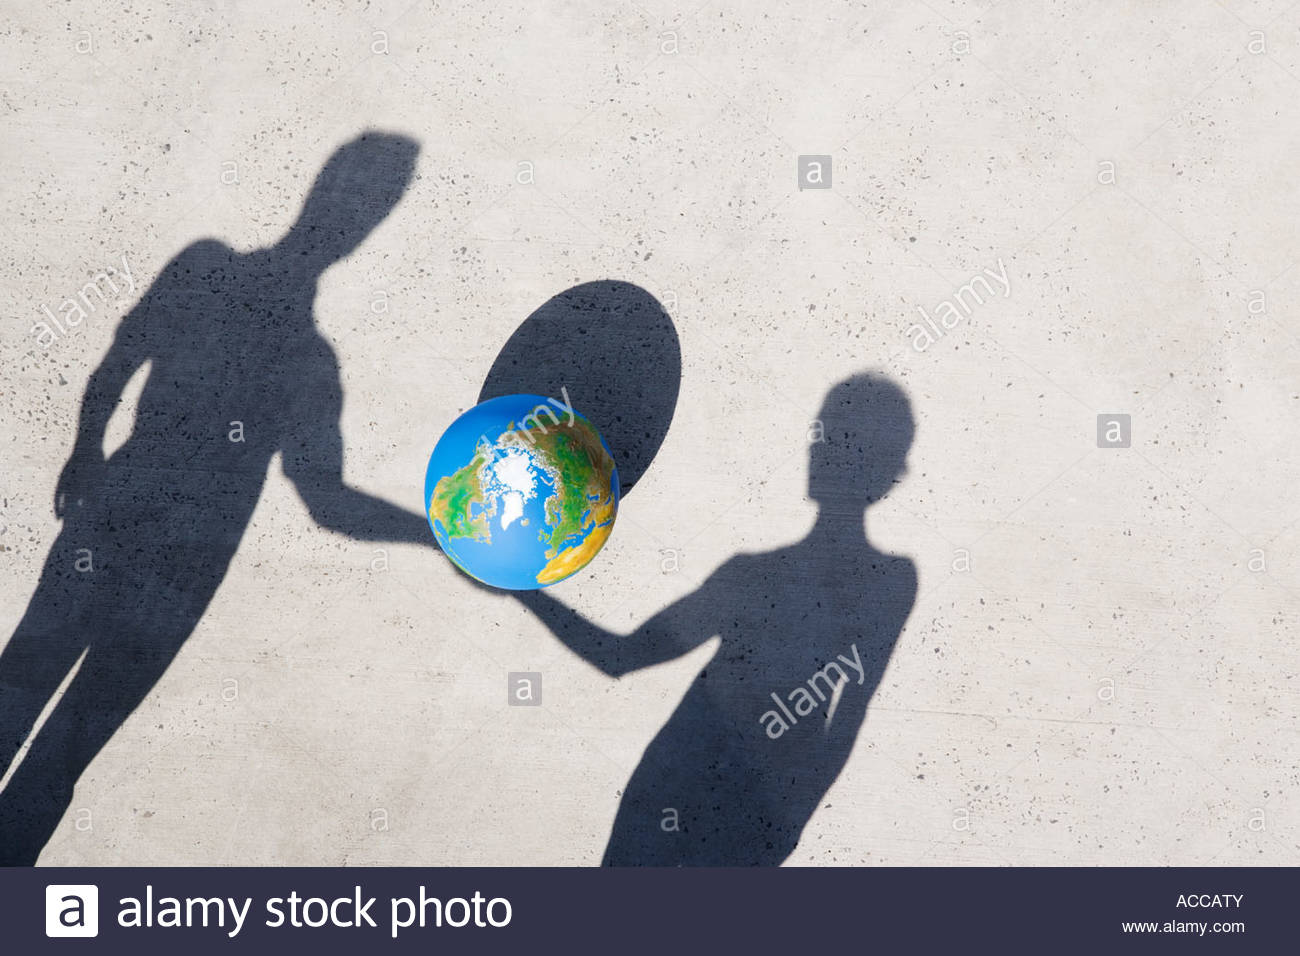 Aerial View of two shadows holding globe outdoors - Stock Image